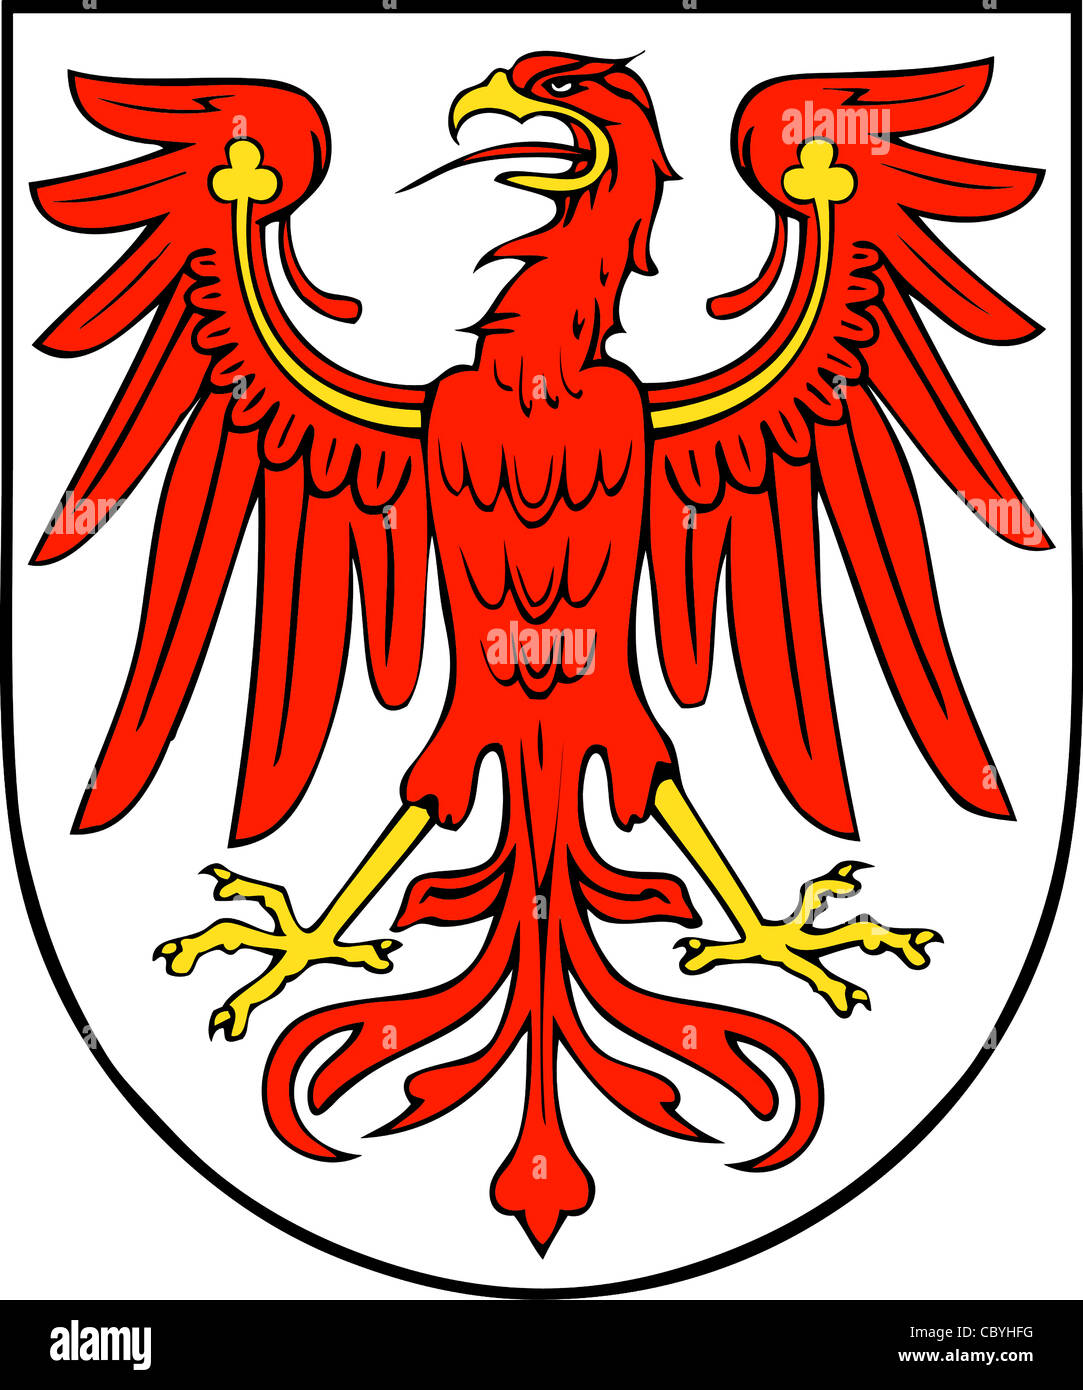 Coat of arms of the German federal state Brandenburg. - Stock Image